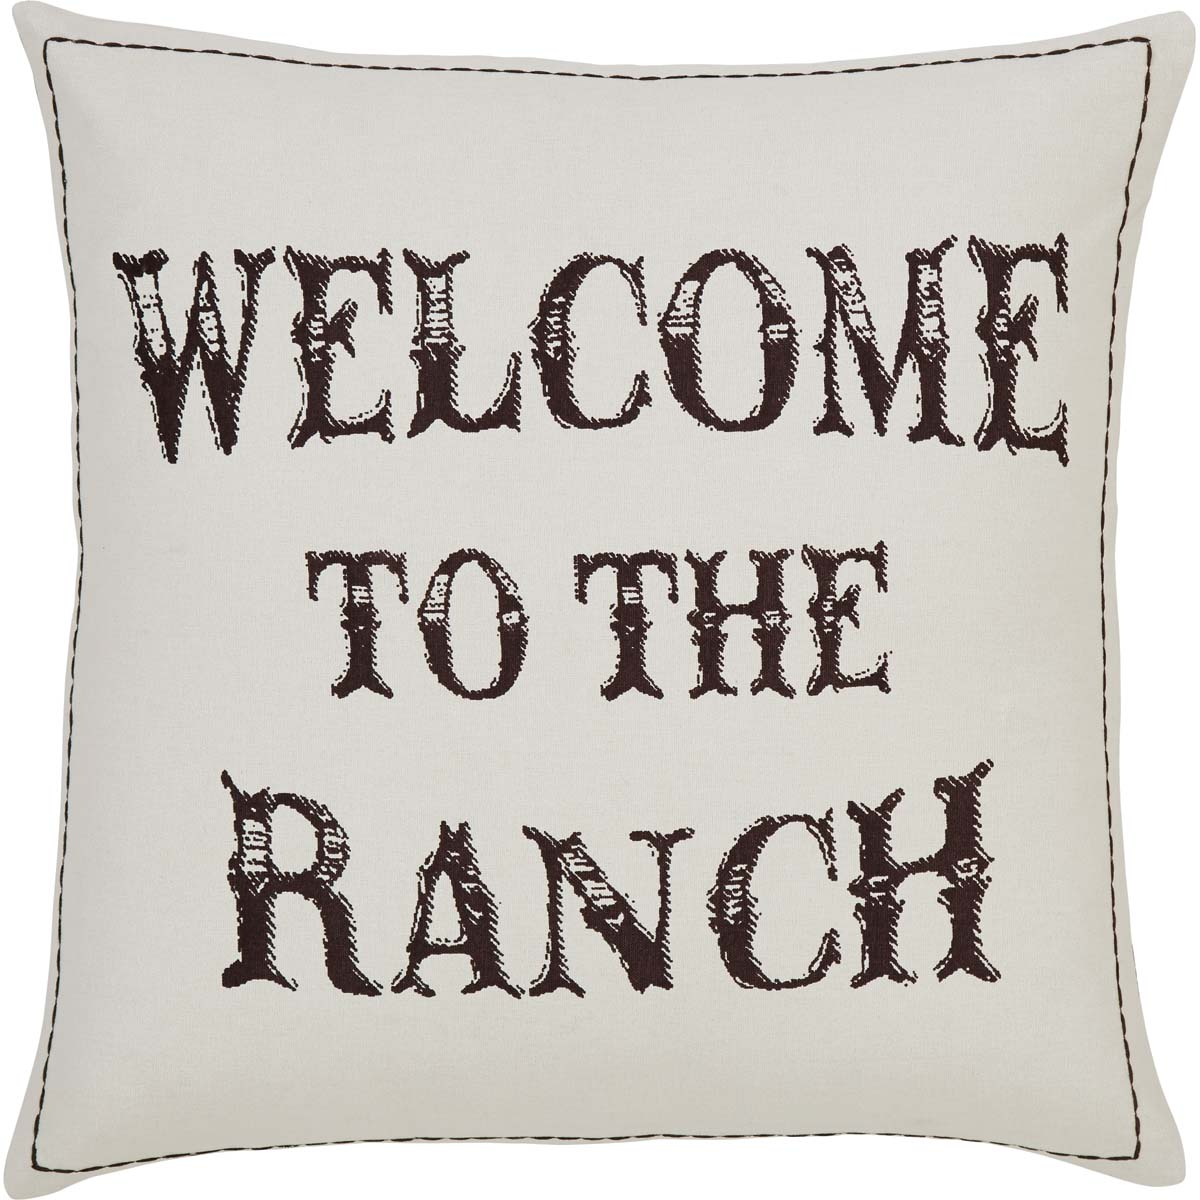 Welcome to the Ranch Pillow Cover 18x18